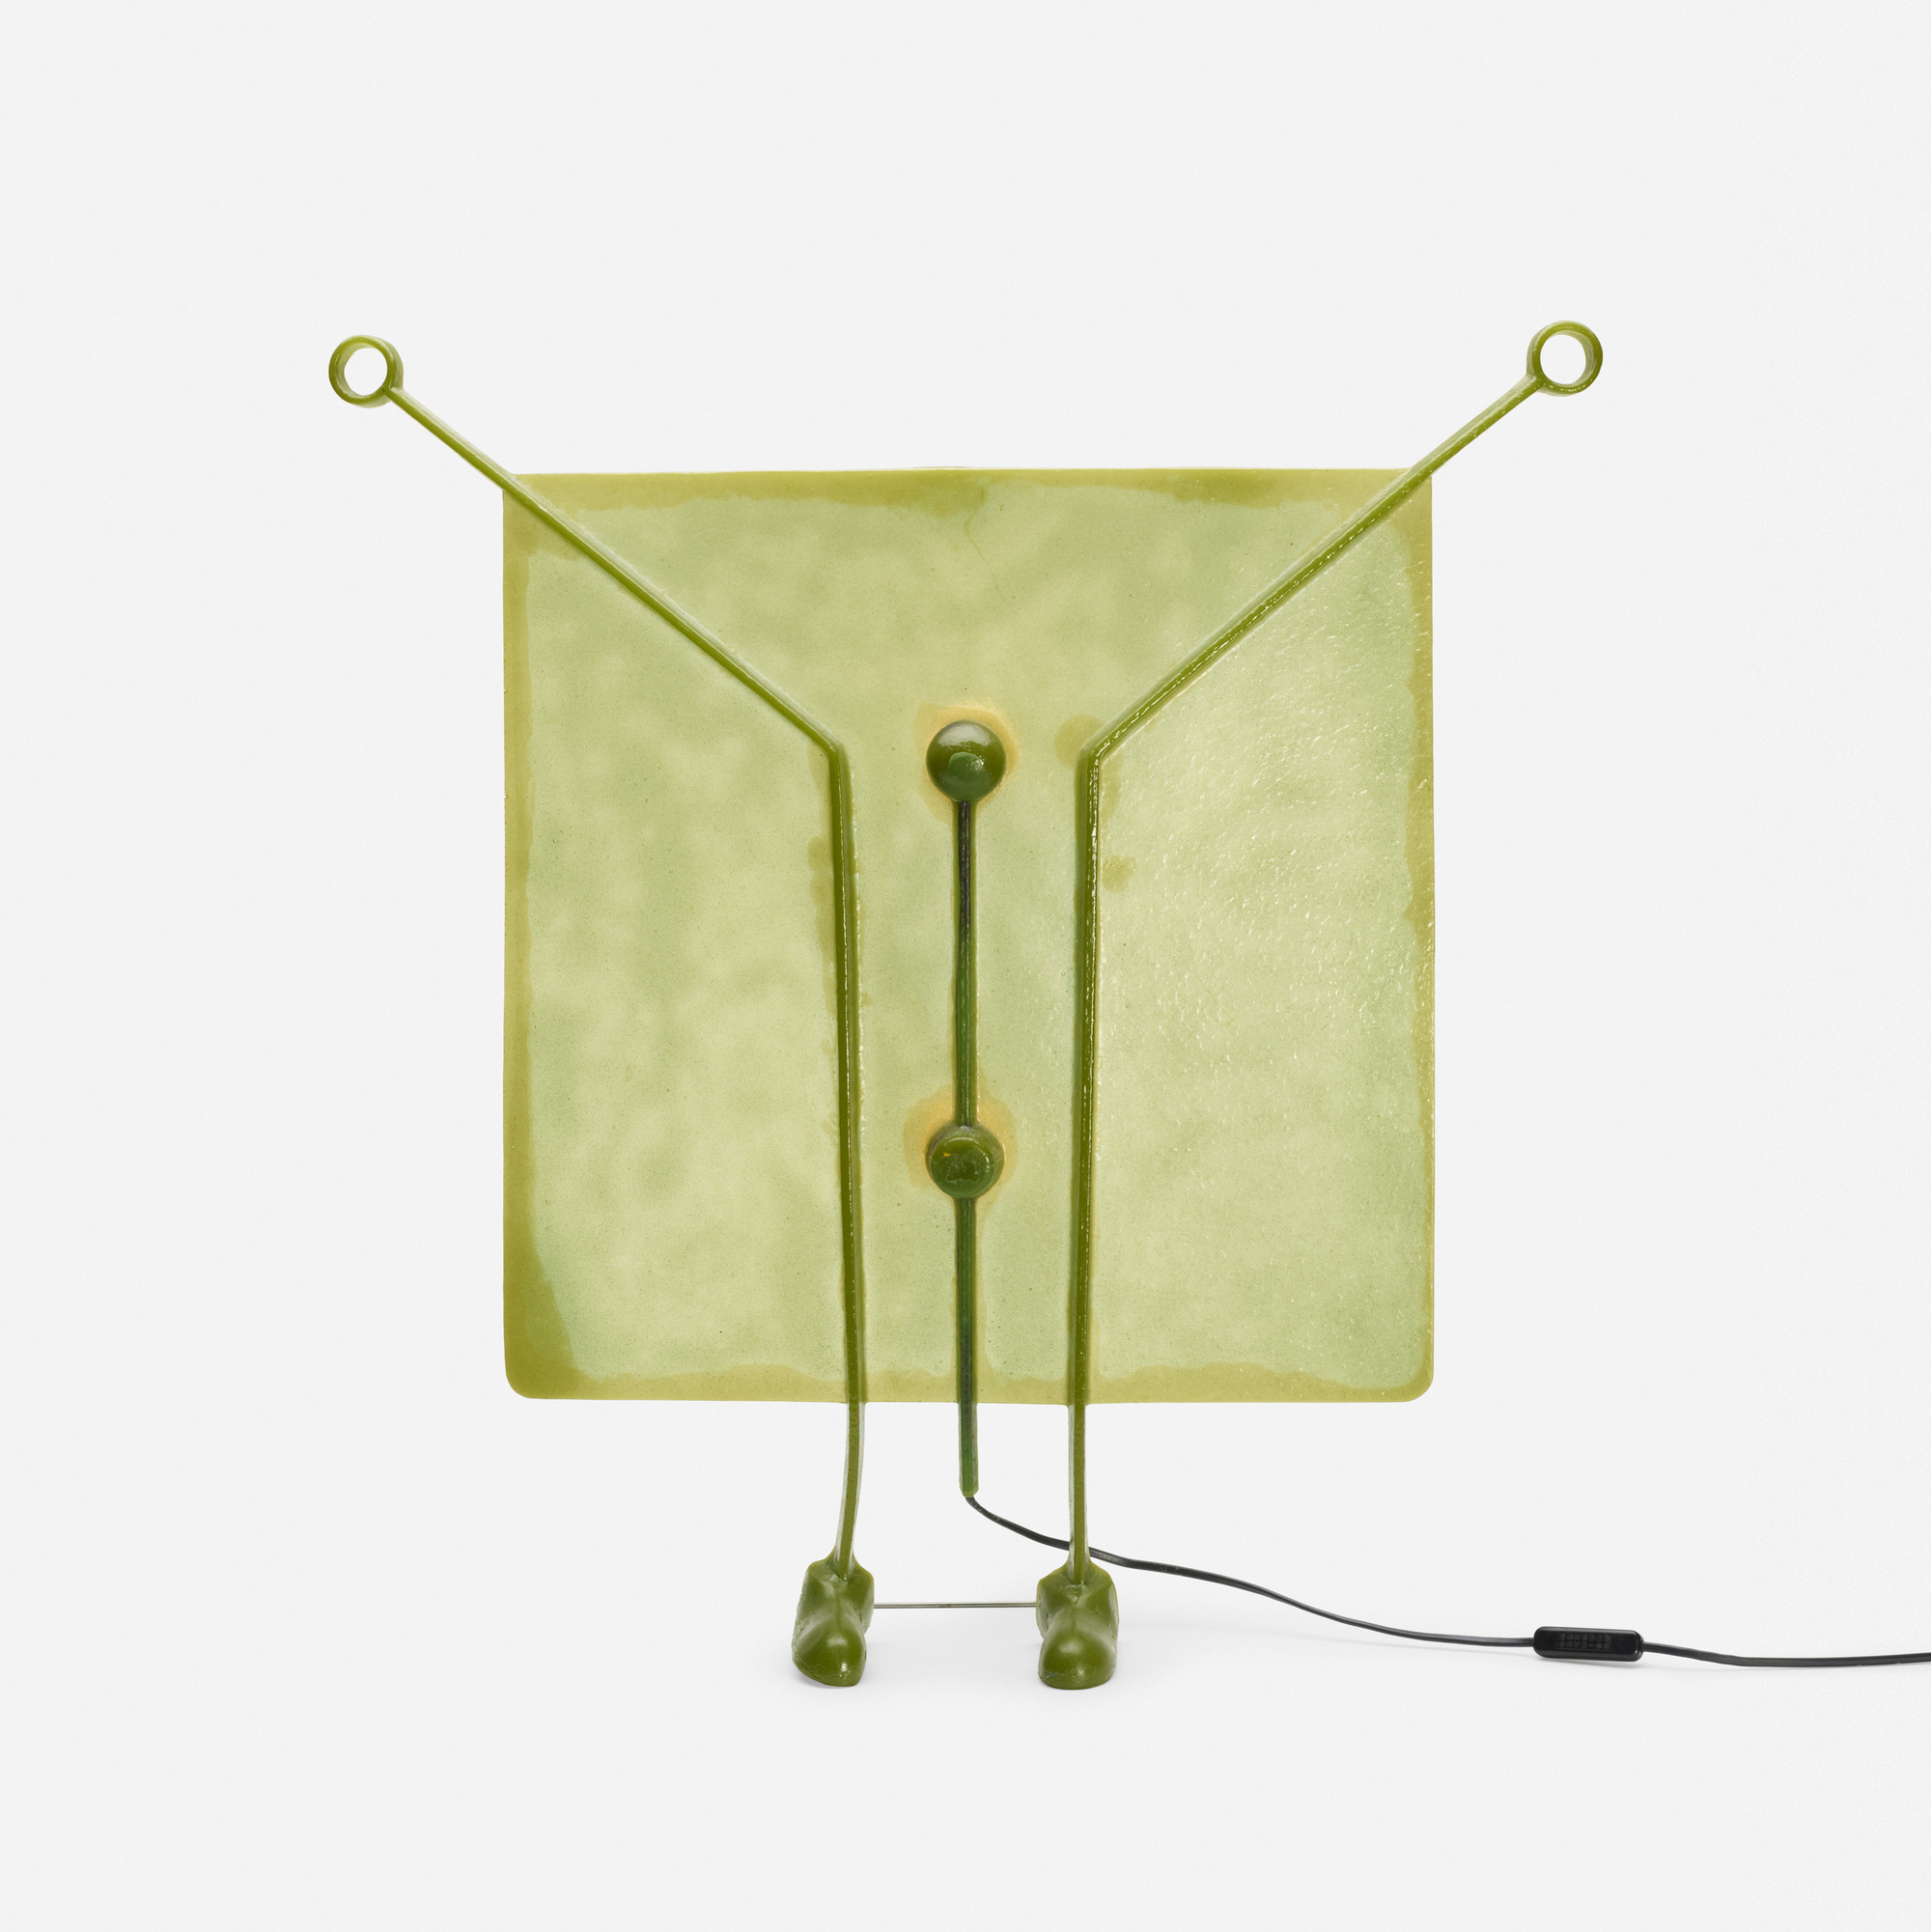 284: Gaetano Pesce / Salvatore table lamp from the Open Sky series (1 of 2)